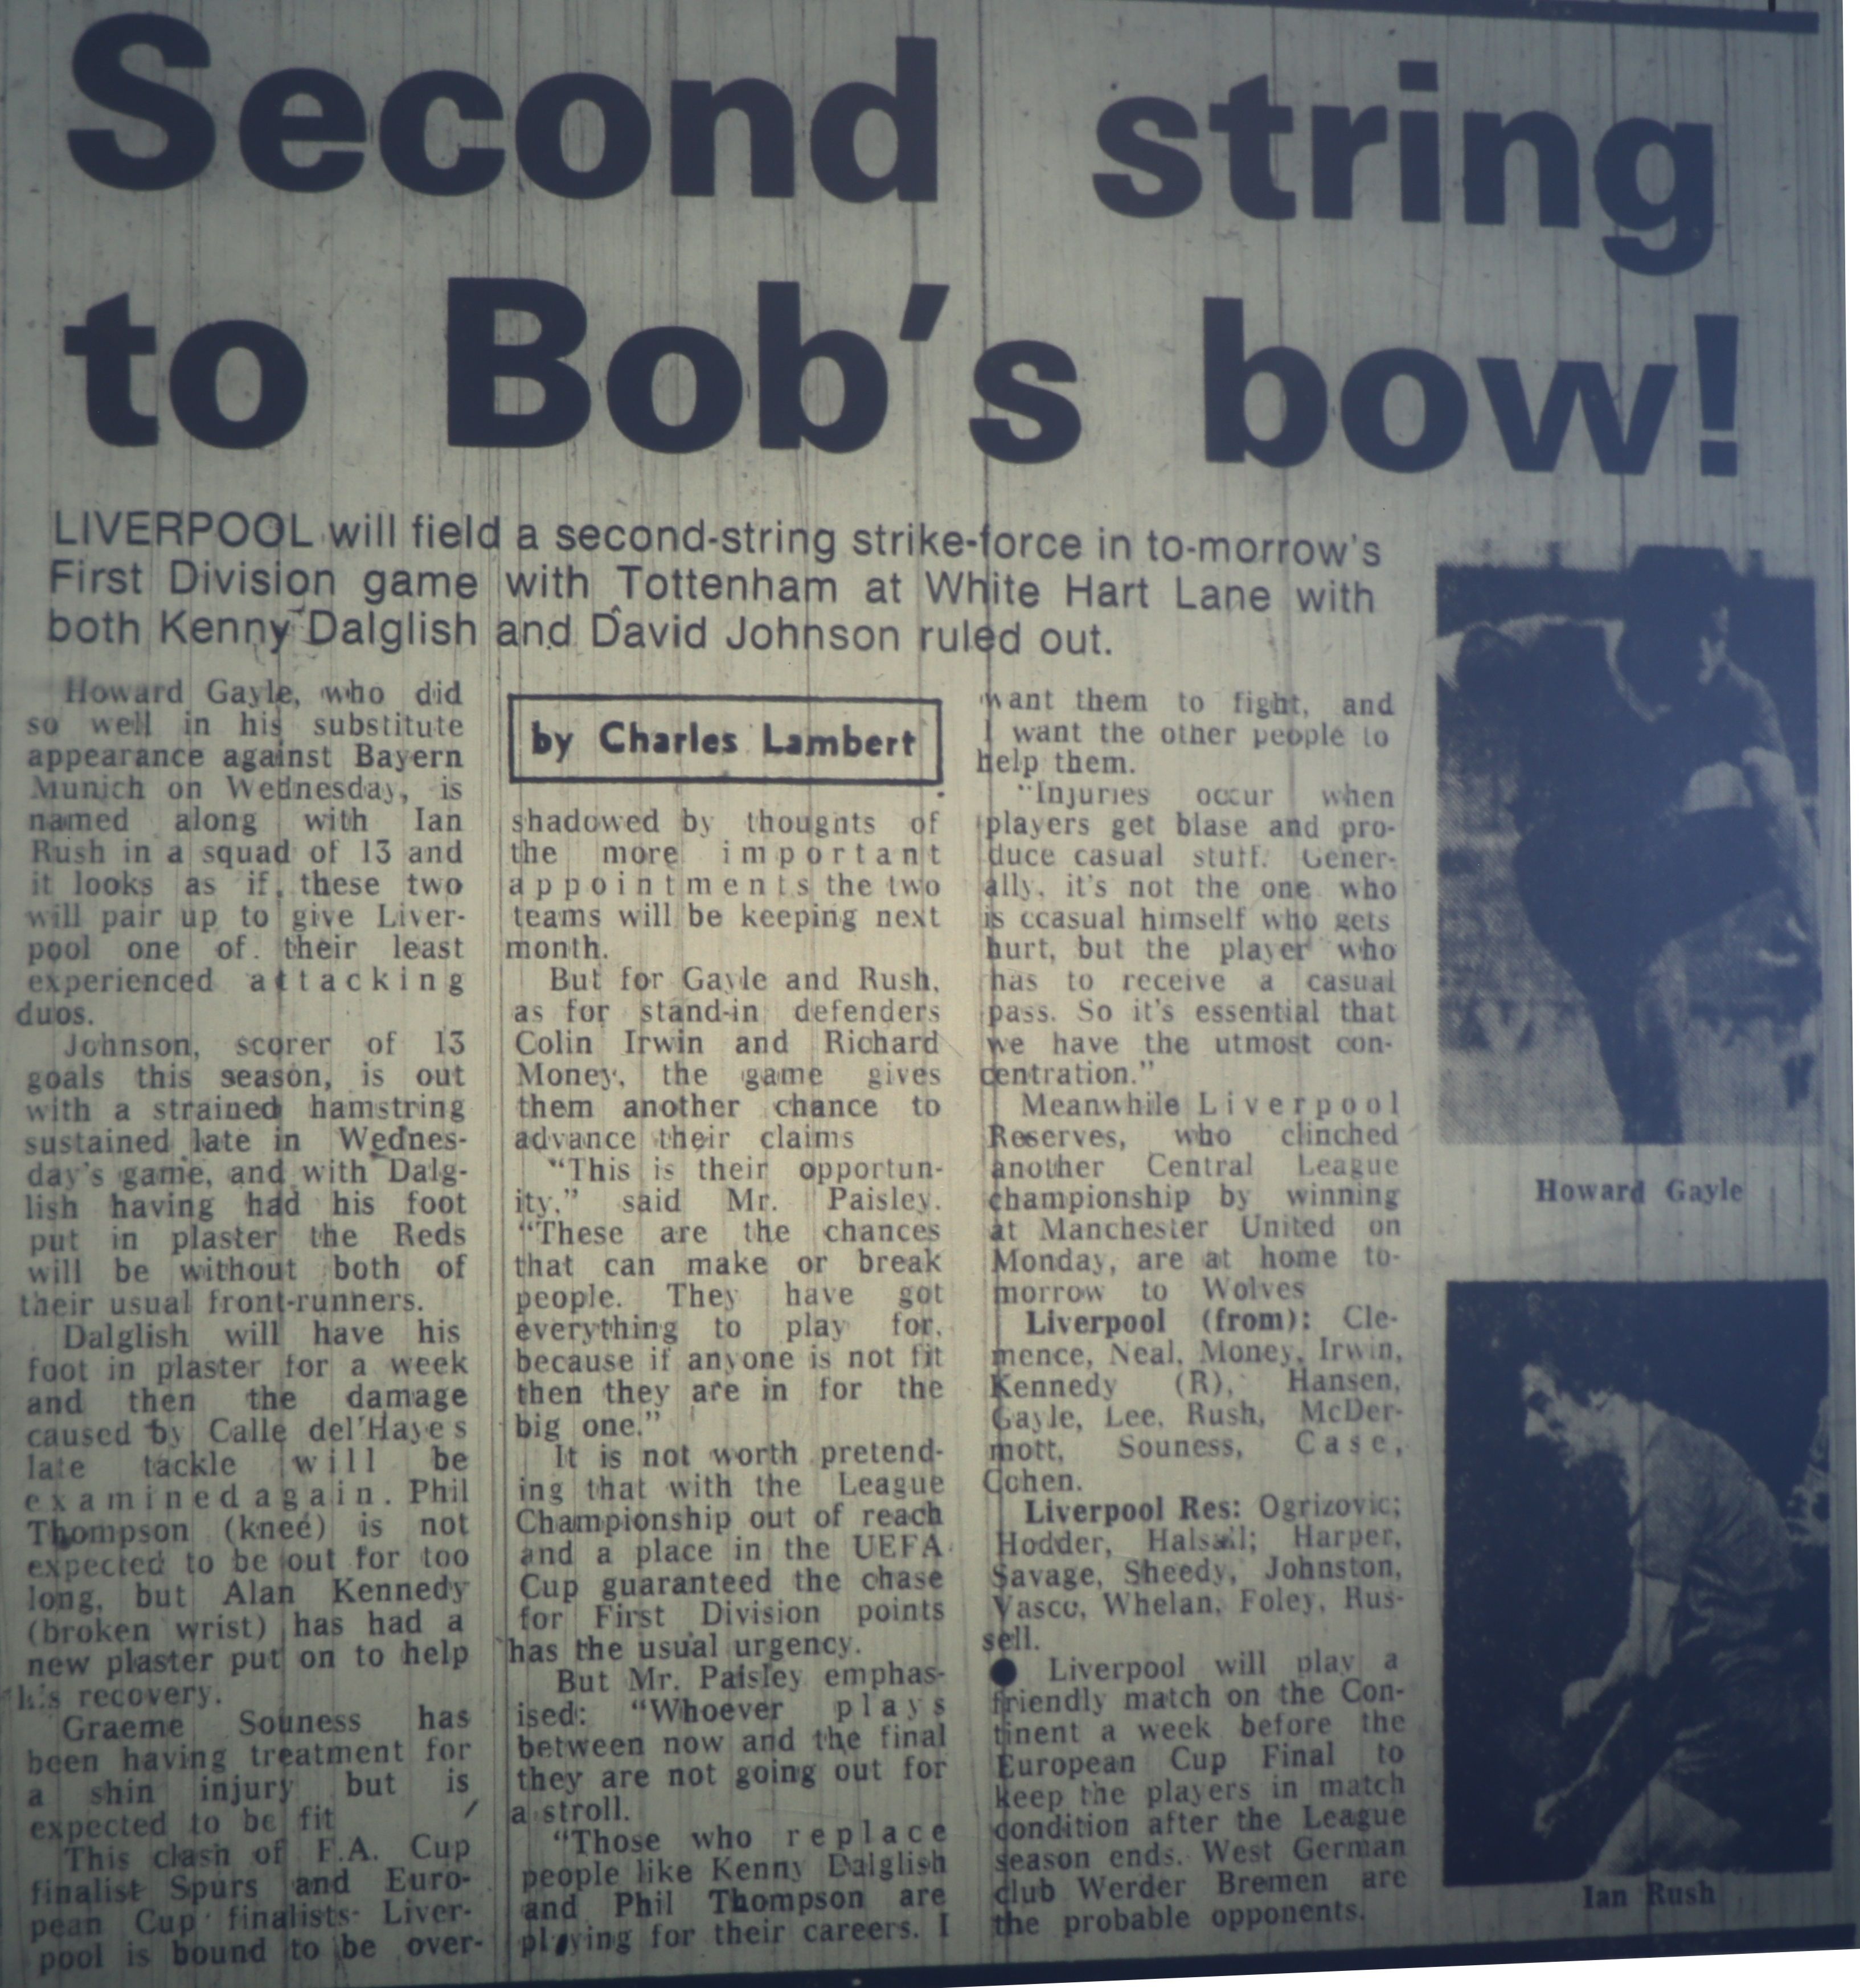 Second string to Bob's bow! - 24 April 1981